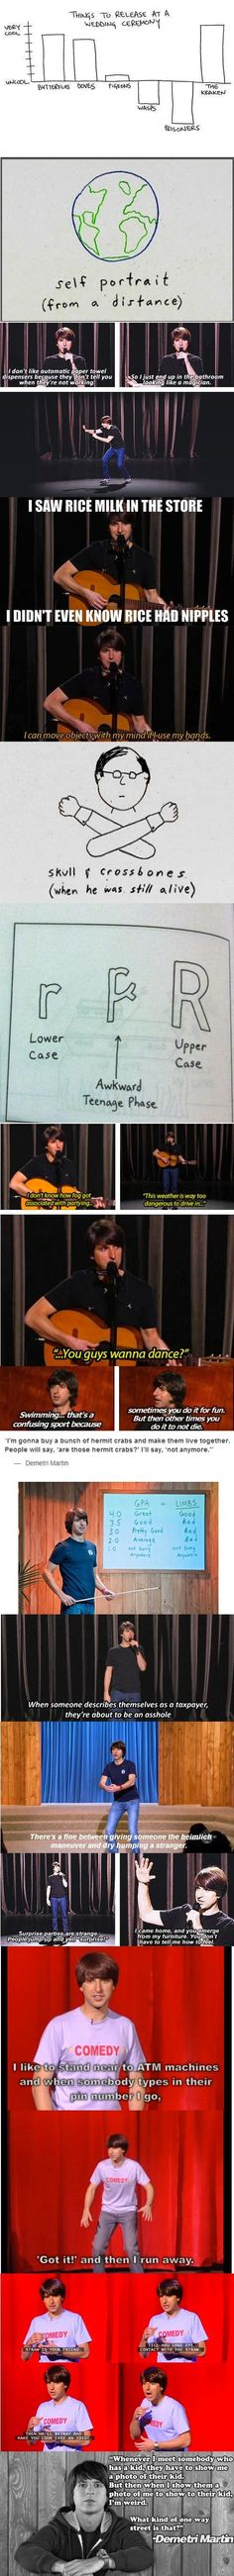 Demetri Martin. he's awesome. similar to mitch hedburg